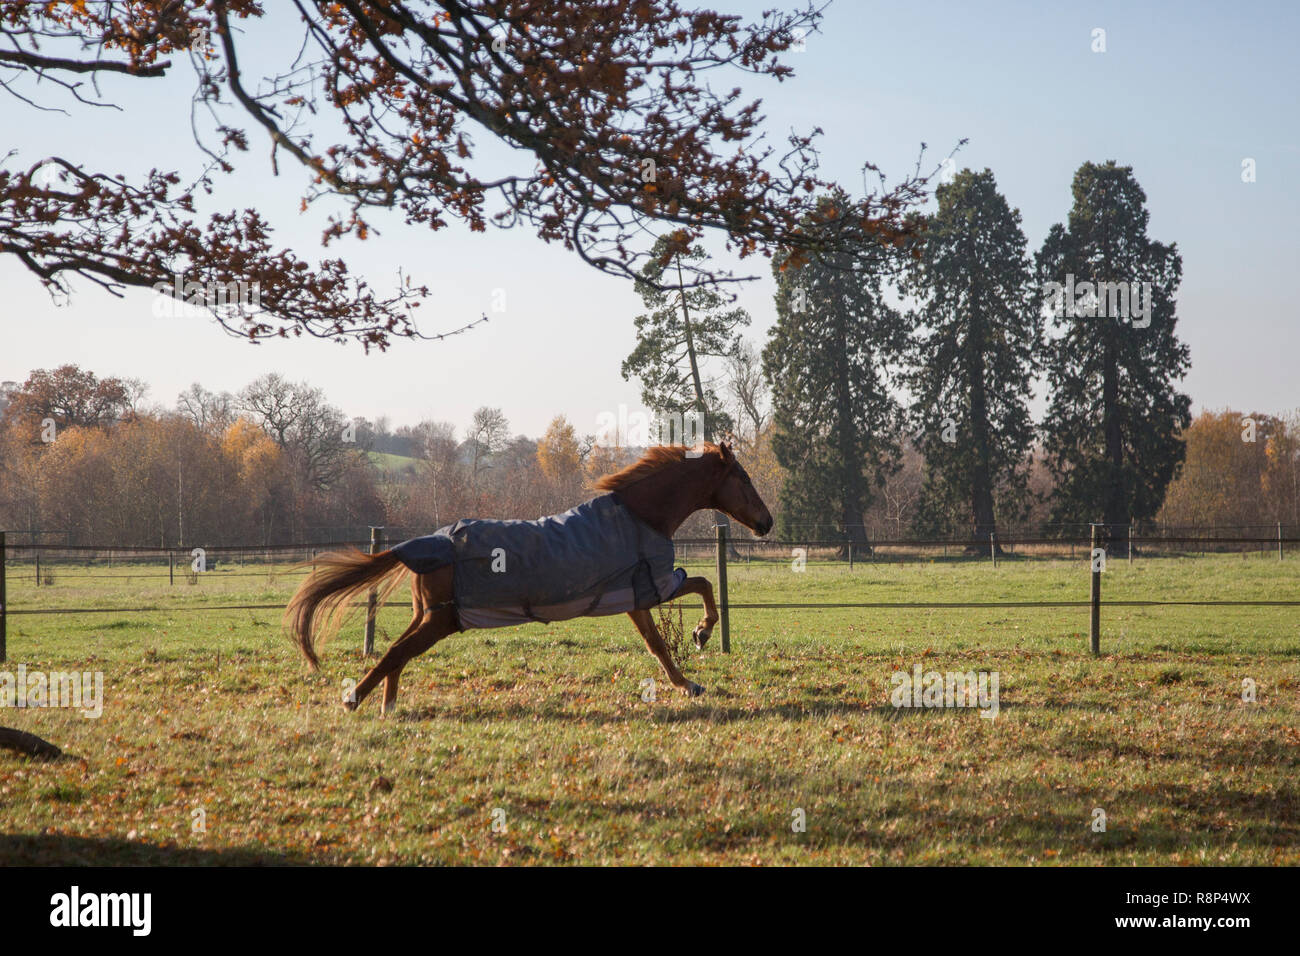 horse running round field with it's rug on having a lovely time in the field on a sunny autumnal day in the English countryside - Stock Image